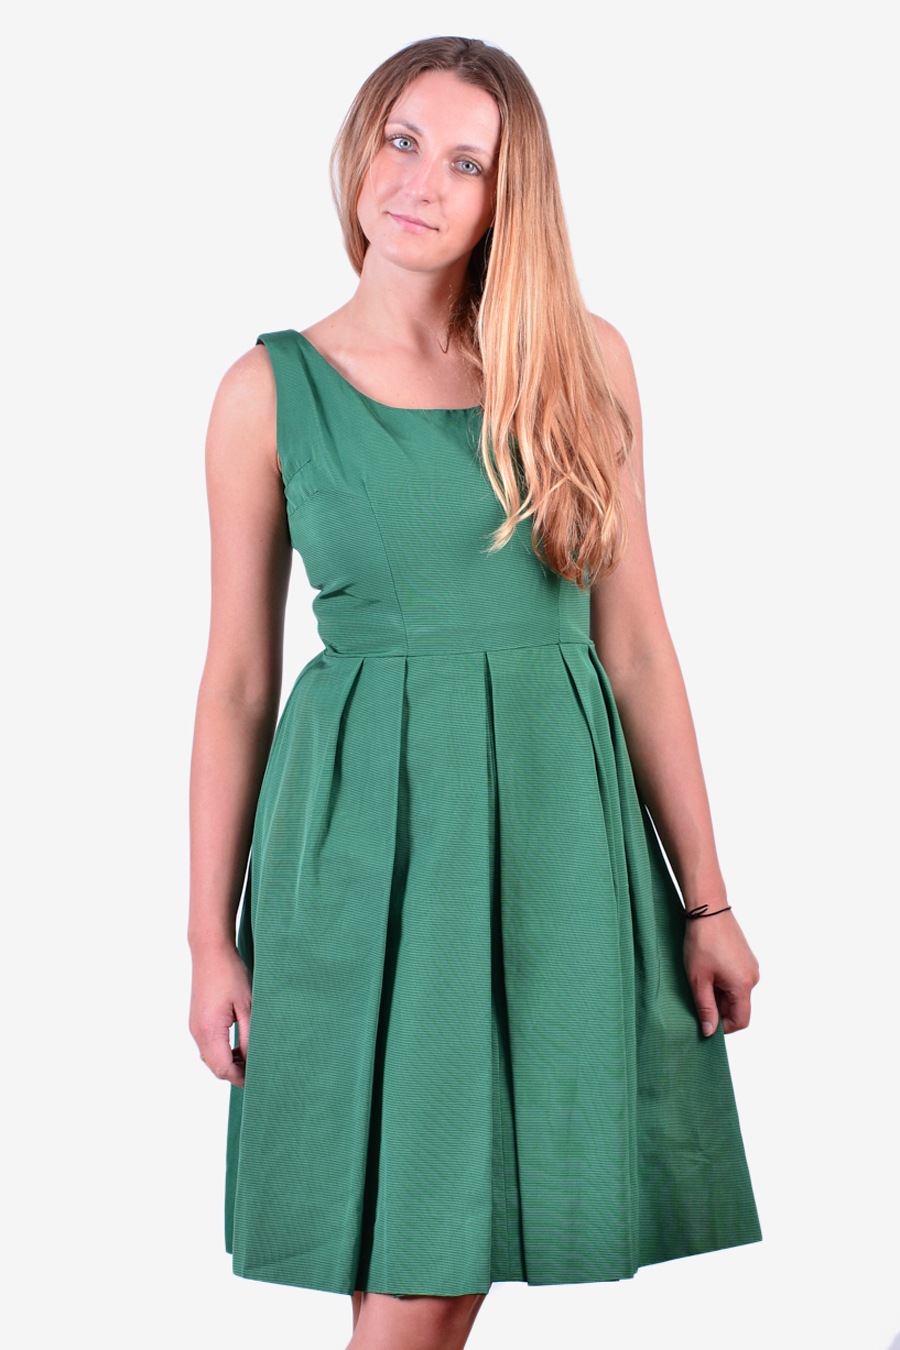 Vintage 1950's green day dress